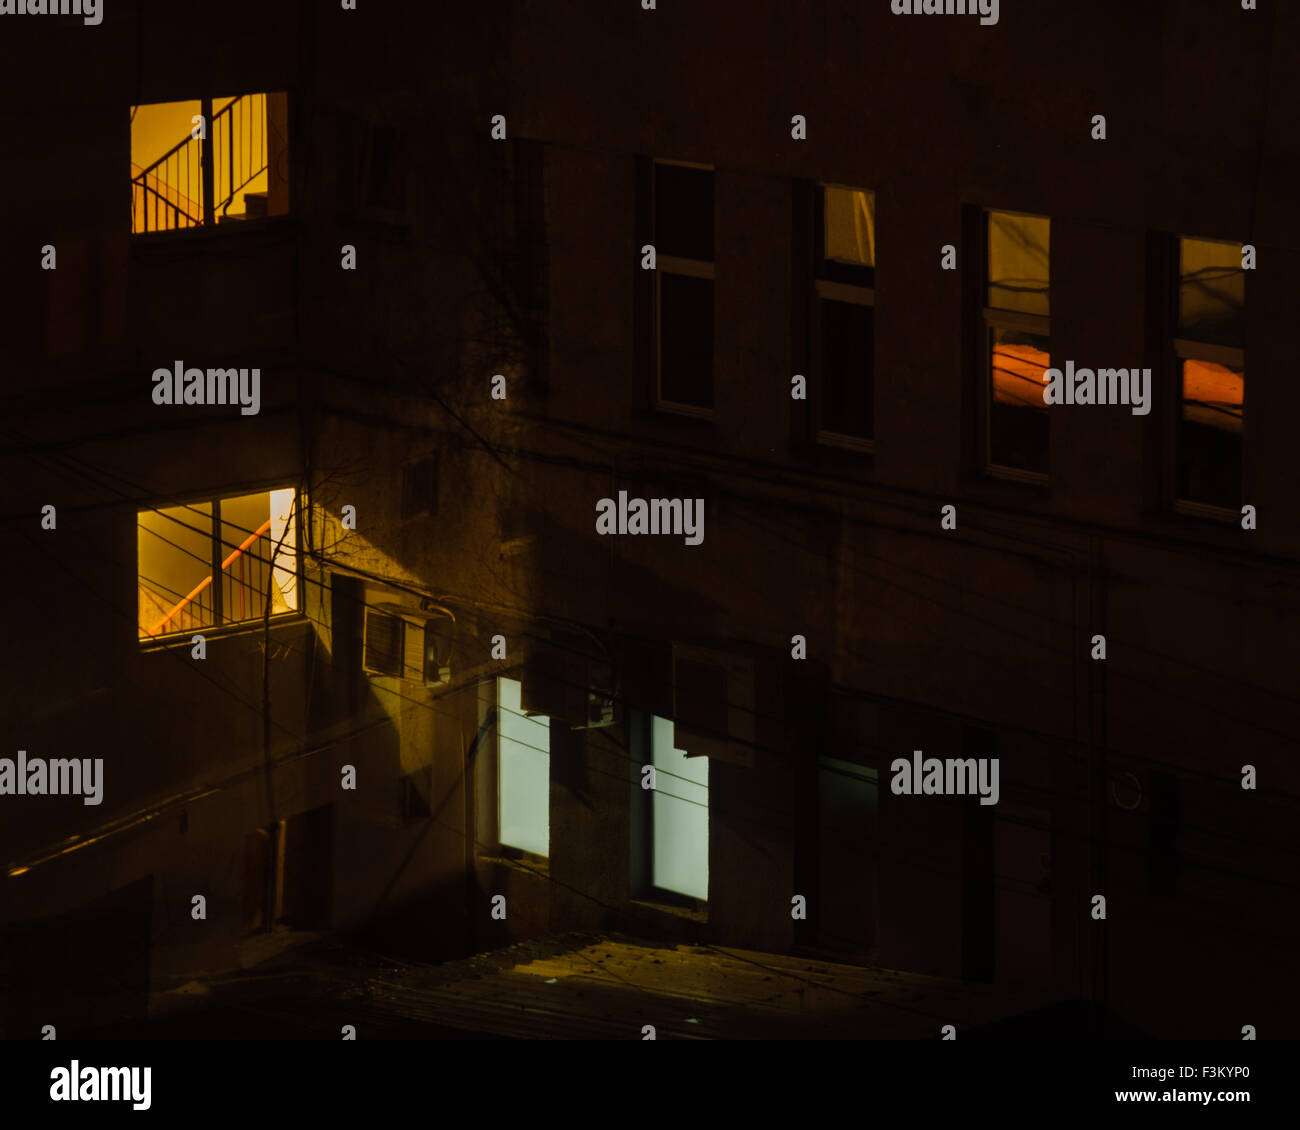 Apartments, windows, lights, concrete blocks in the night in Romania, panel houses constructed in communism. Urban Stock Photo